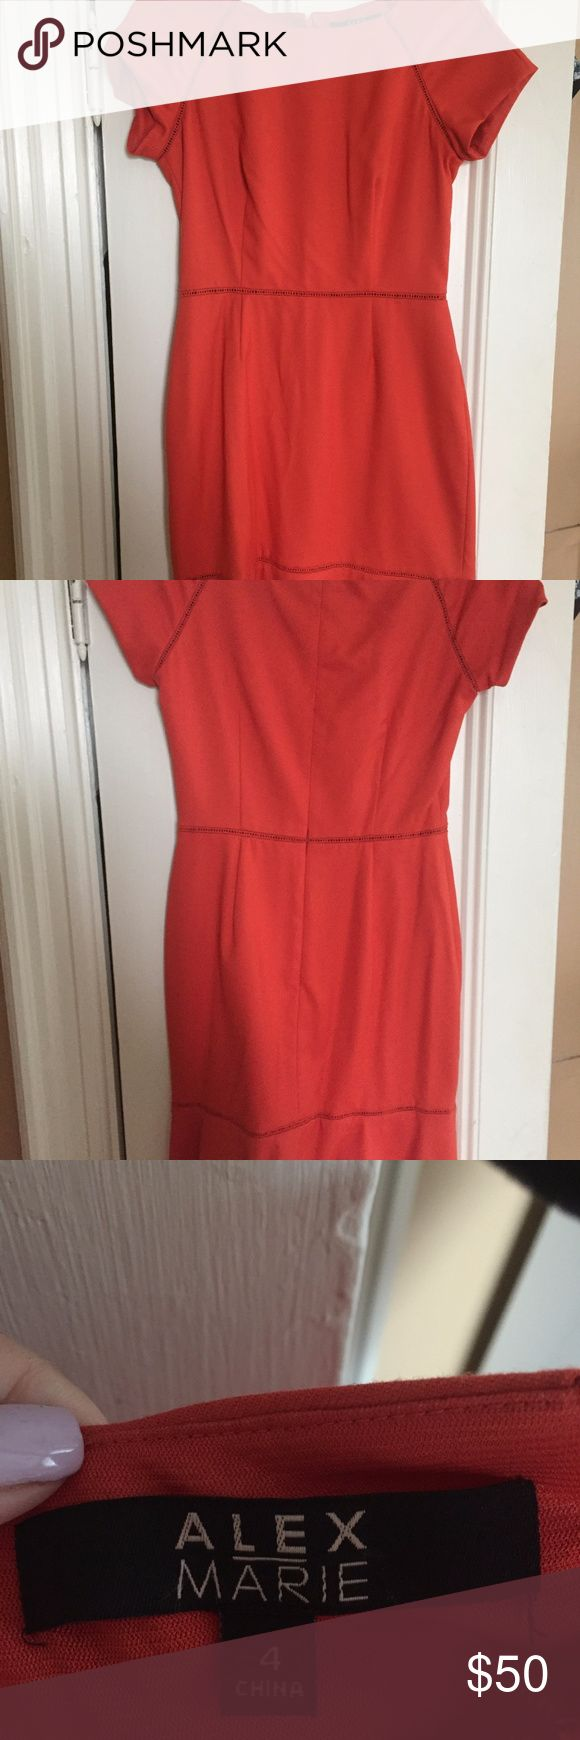 Red Orange Work Dress - Alex Marie Perfect condition, never worn. Dark orange/red work or cocktail dress -- very versatile. Thick fabric, high quality. Alex Marie authentic. Alex Marie Dresses